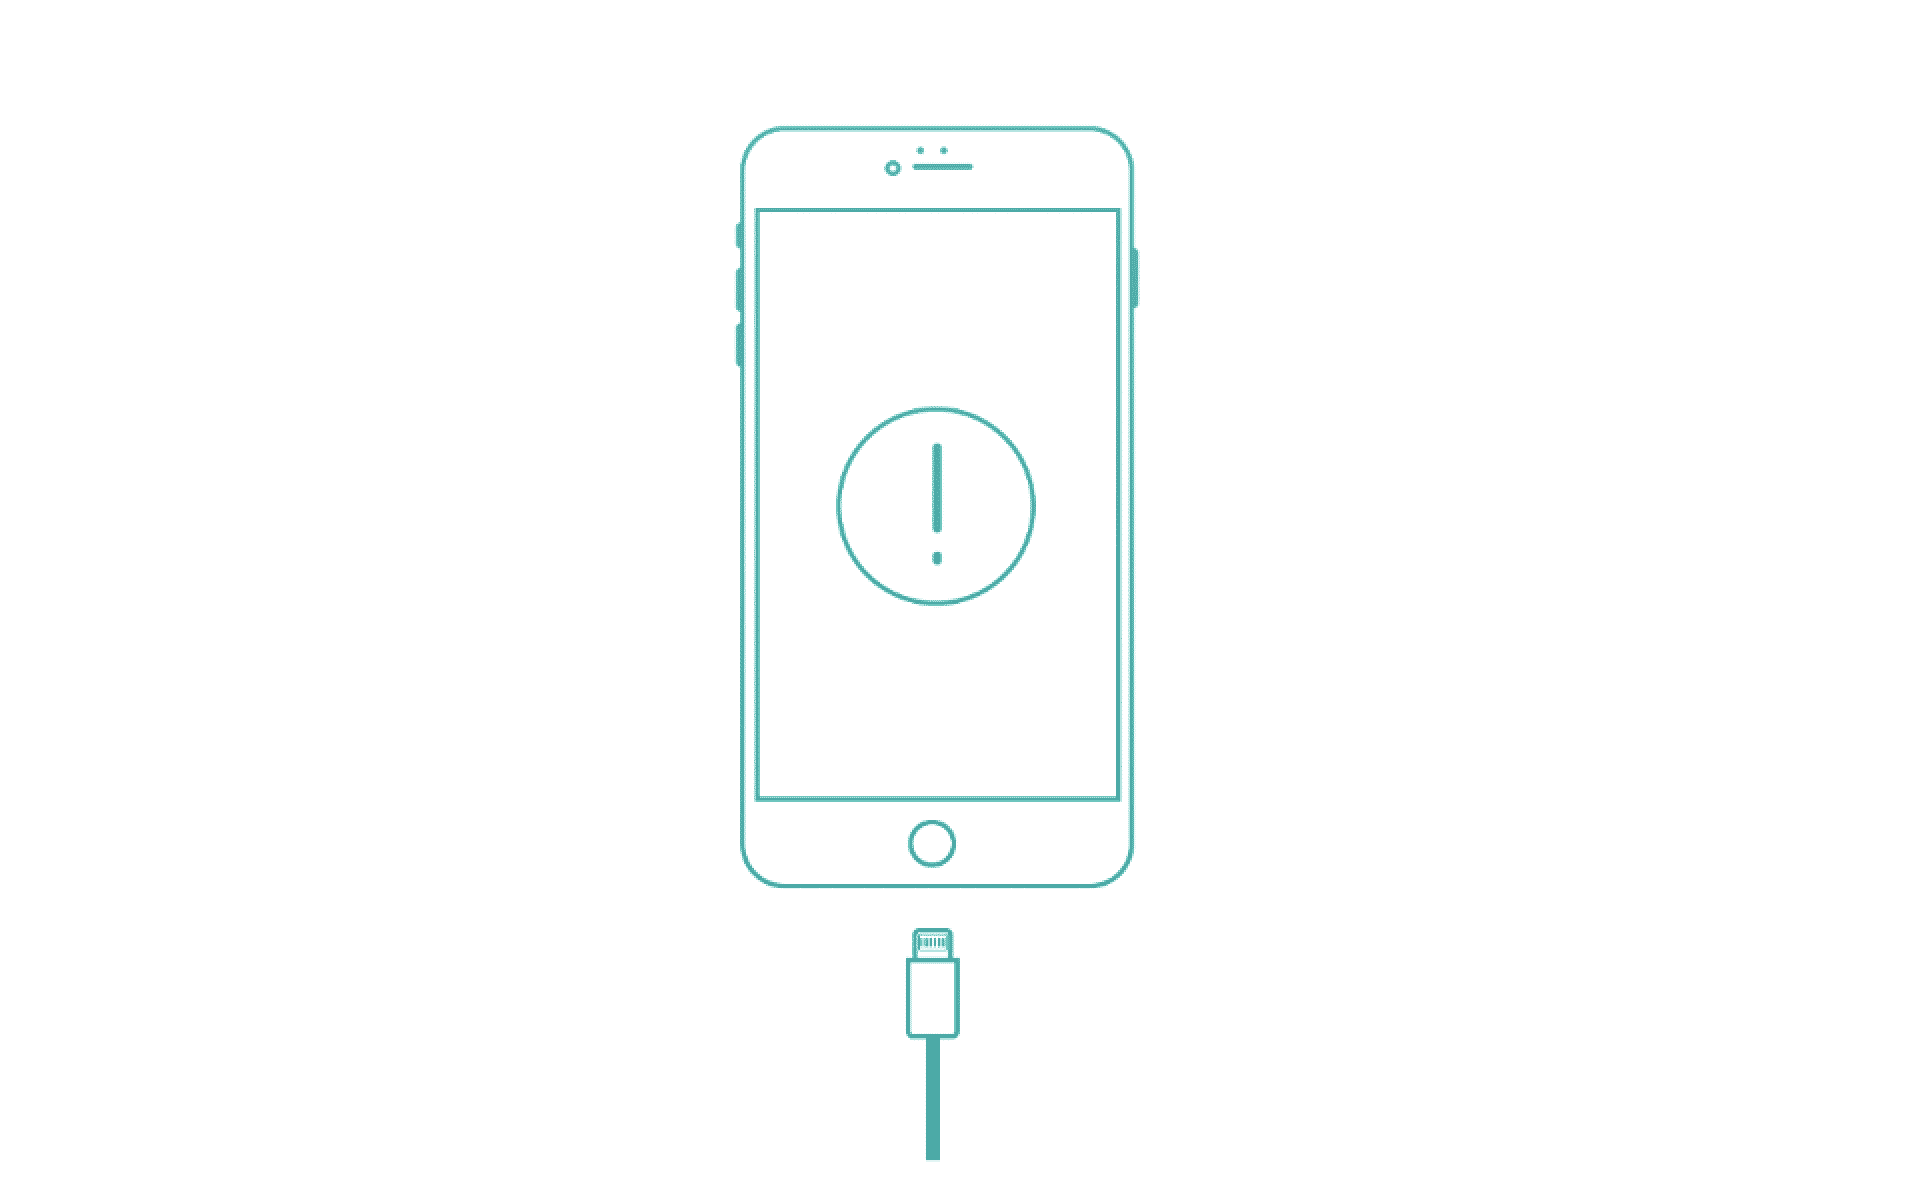 TunesKit iOS System Recovery - A Reliably Fast Solution to Getting Back Lost Data